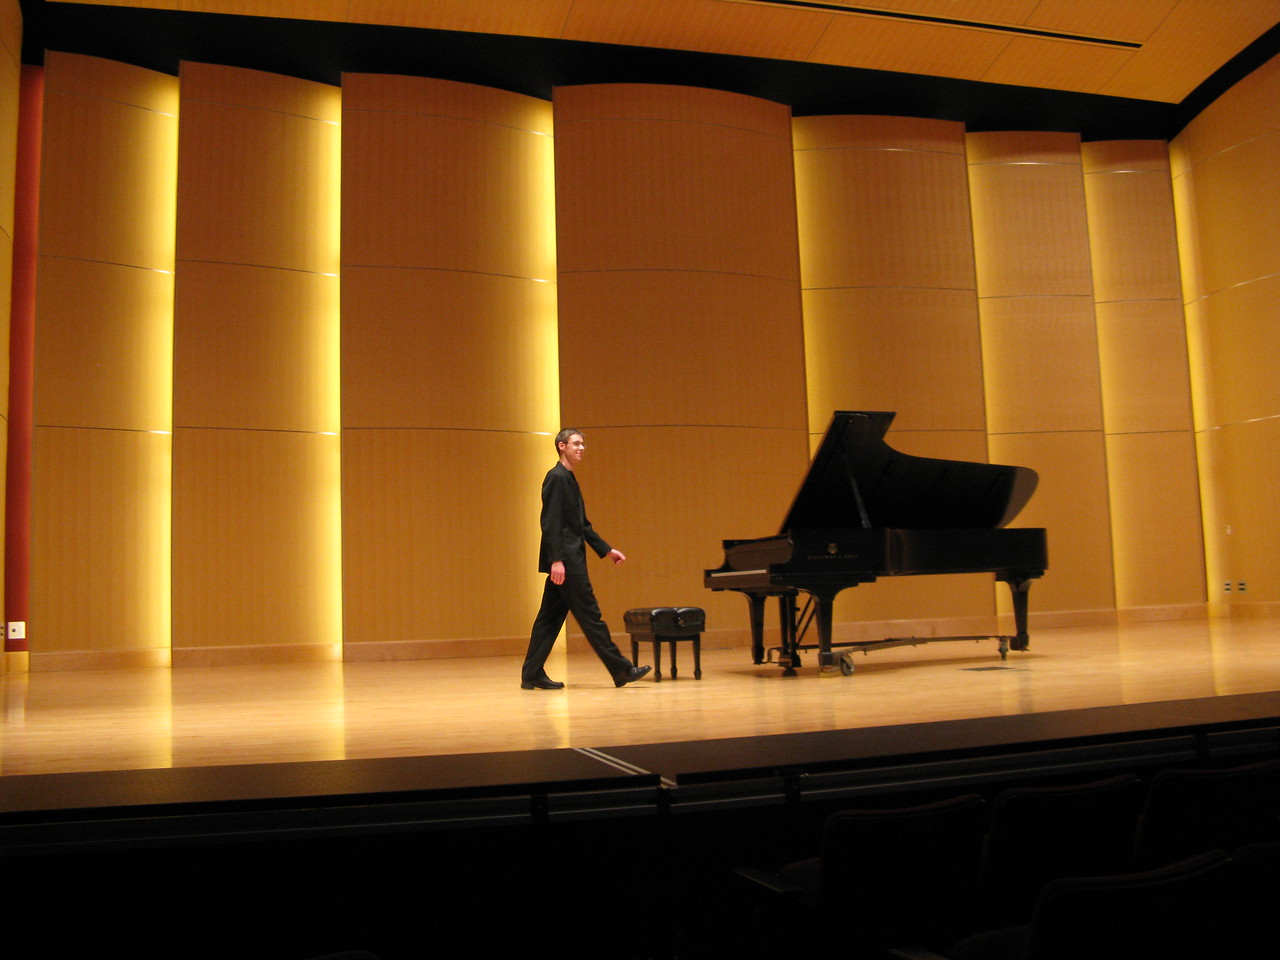 Kevin entering the stage in the Concert Hall in the Music Building at Central Washington University.